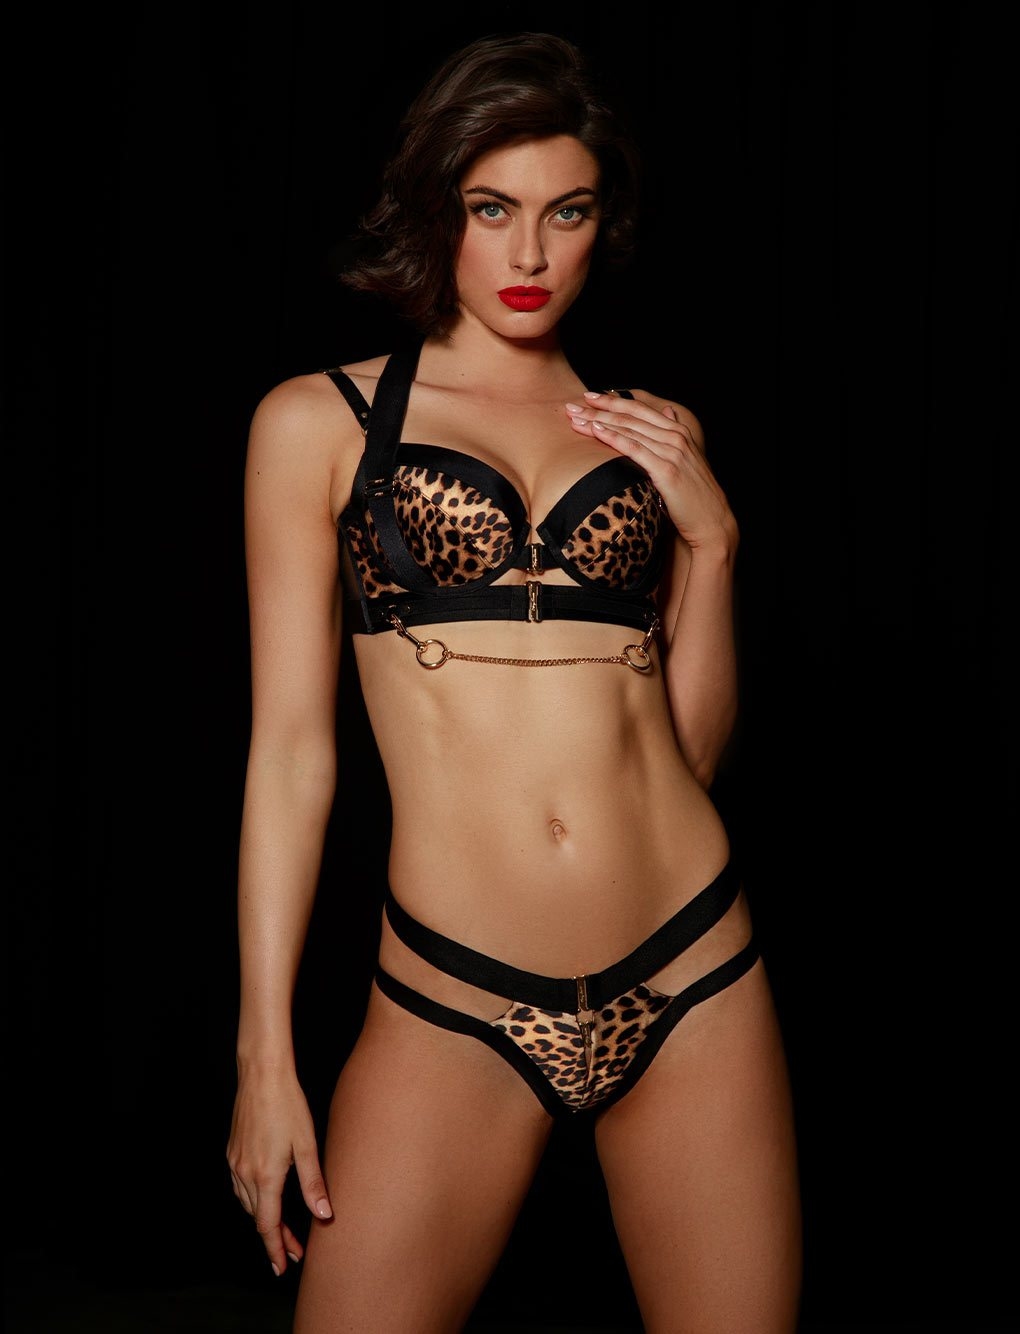 Kukuro Lingerie Set | Shop  Lingerie Honey Birdette